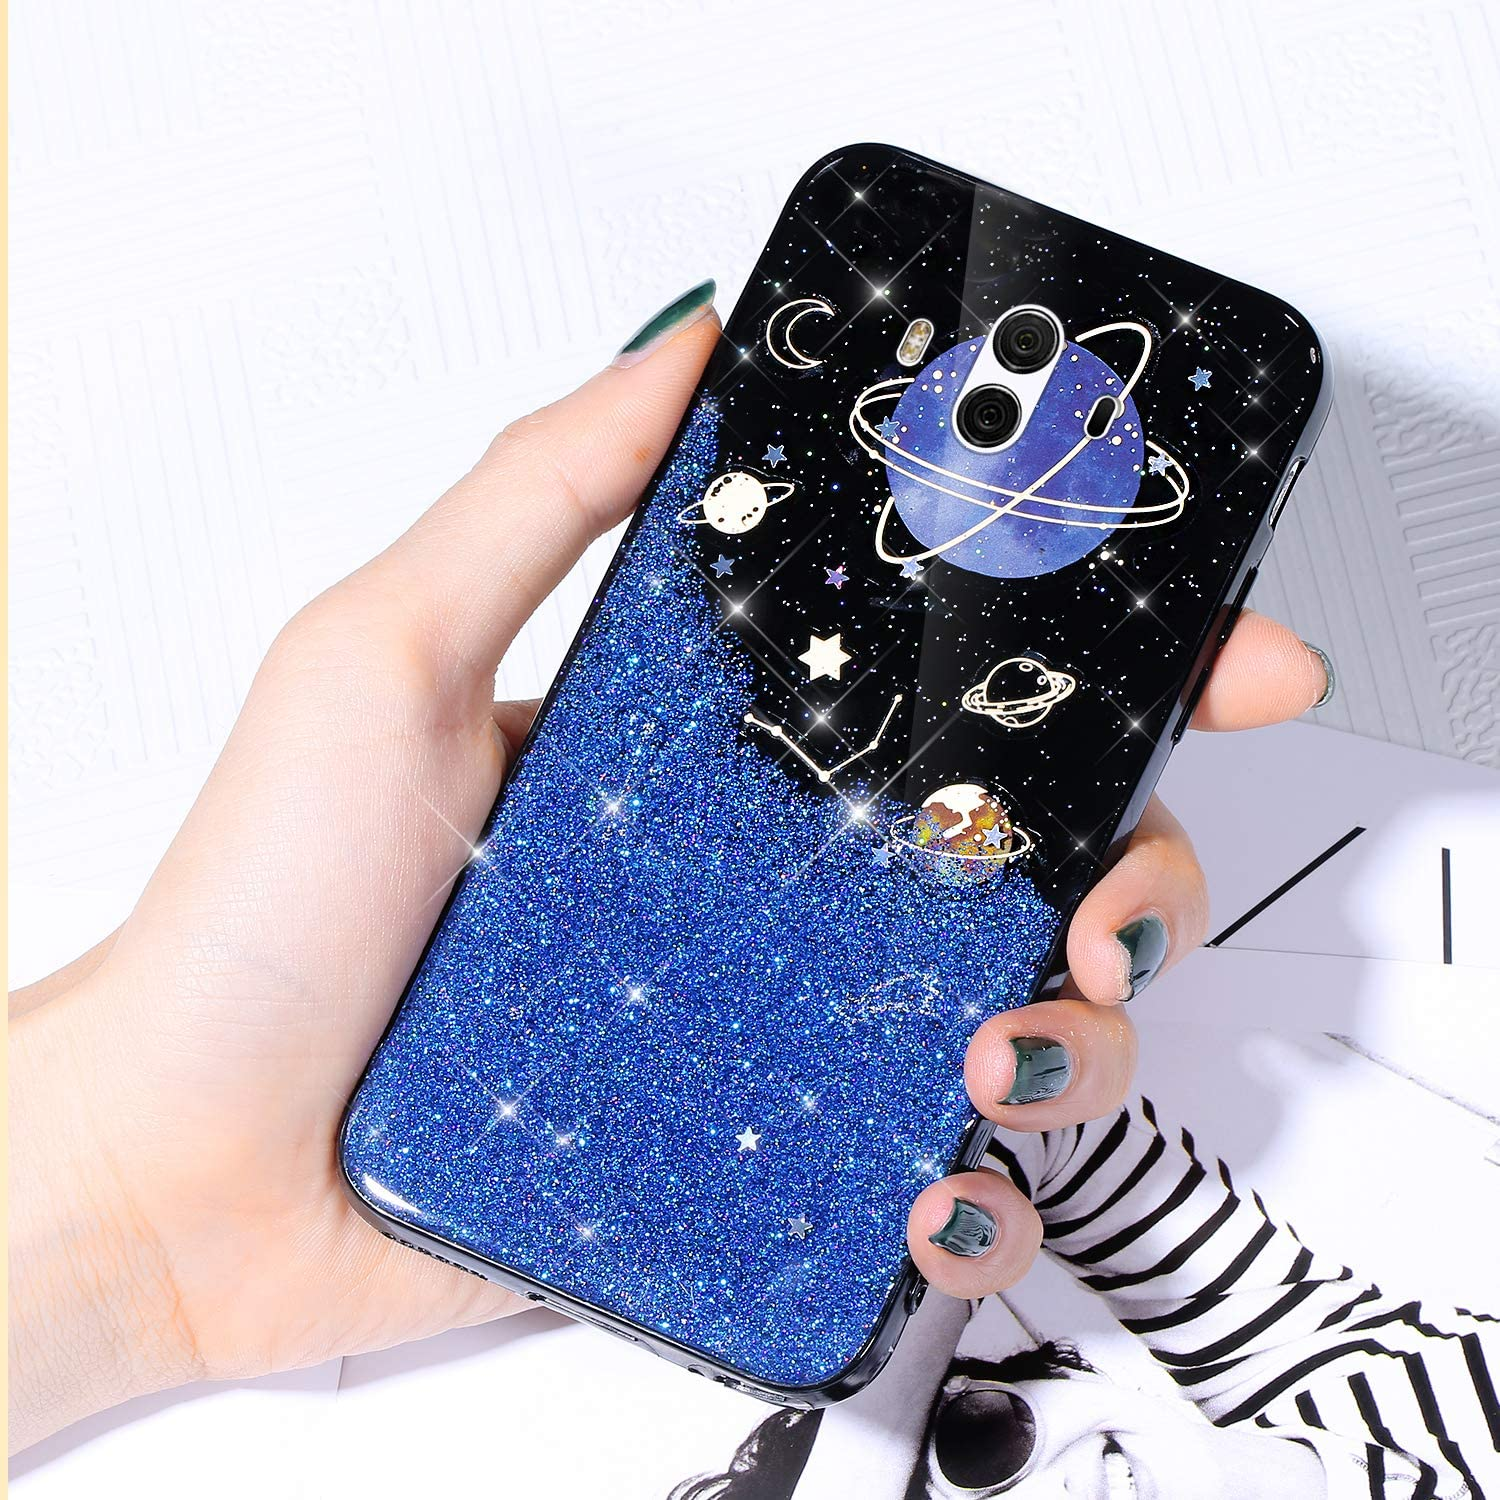 Case for Huawei Mate 10 Shiny Starry Cover Free shipping anywhere in Max 46% OFF the nation Sparkle Glitter